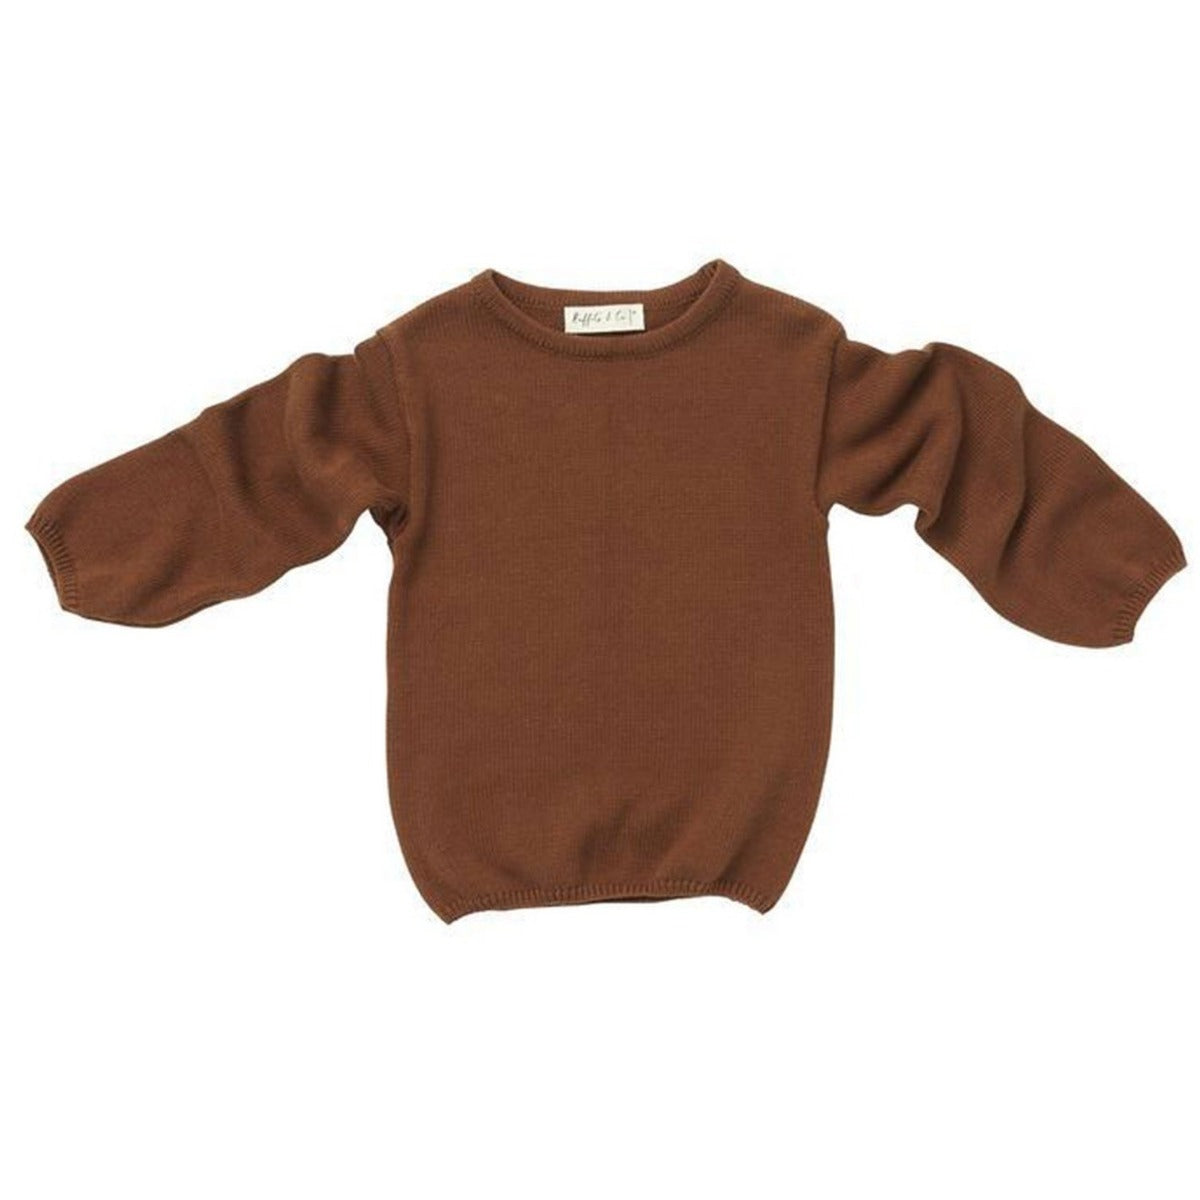 US stockist of Ruffets & Co cotton knit friar brown Kieron sweater